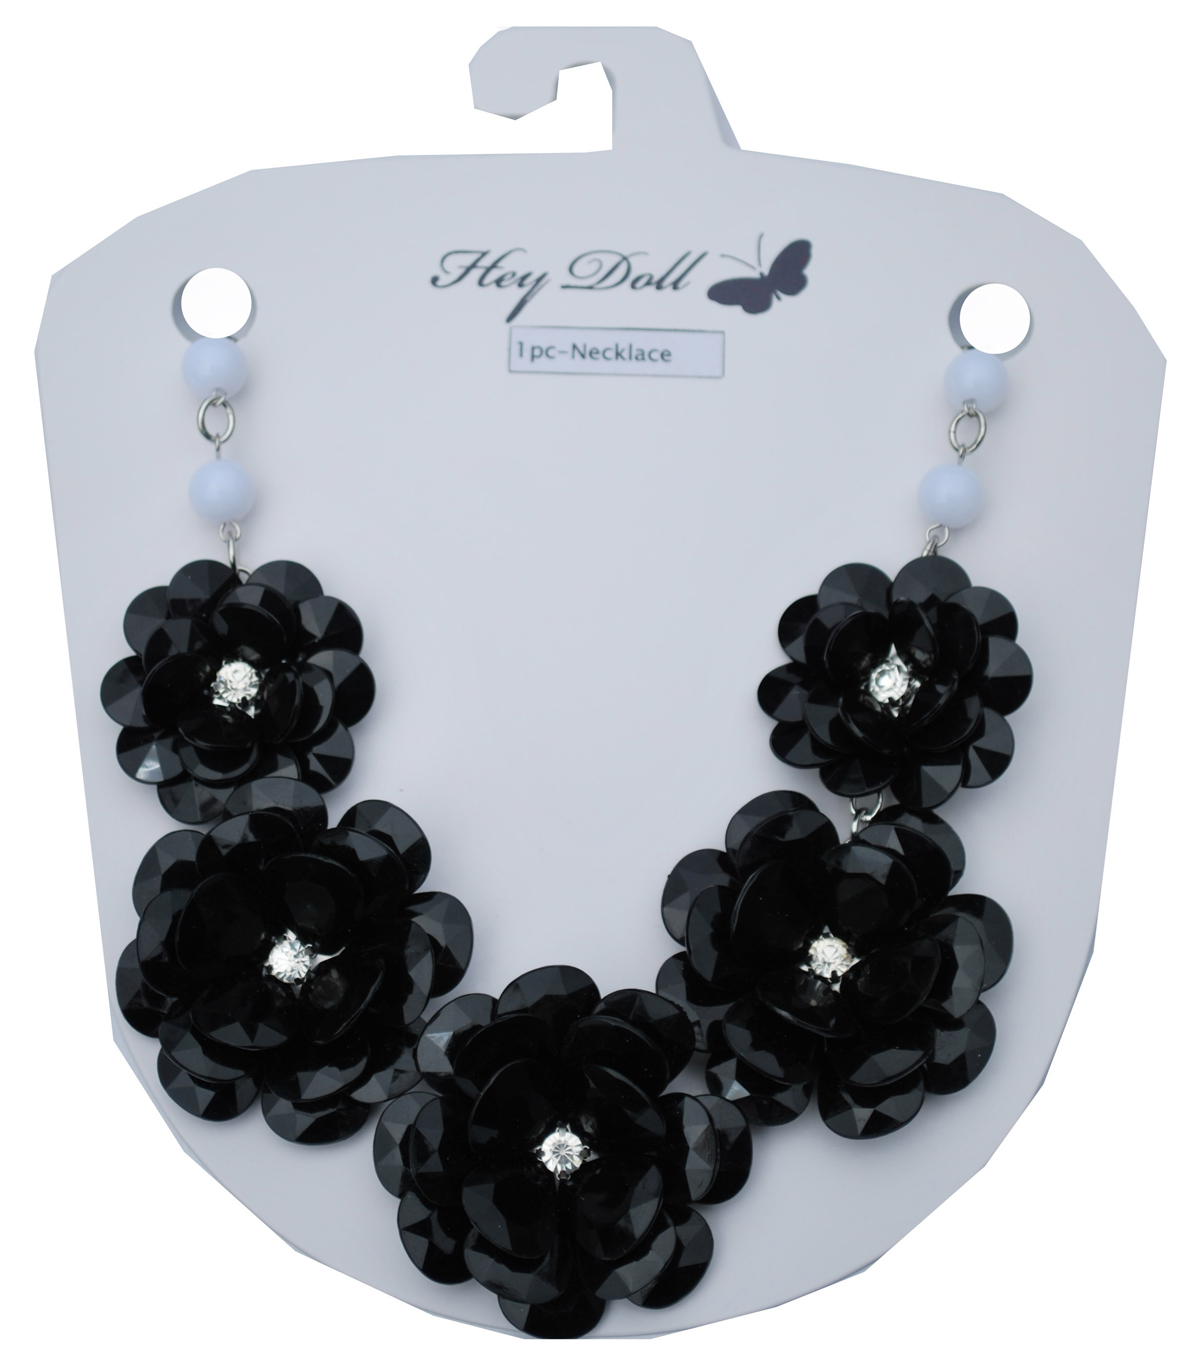 Hey Doll Rosette Black and White Statement Necklace